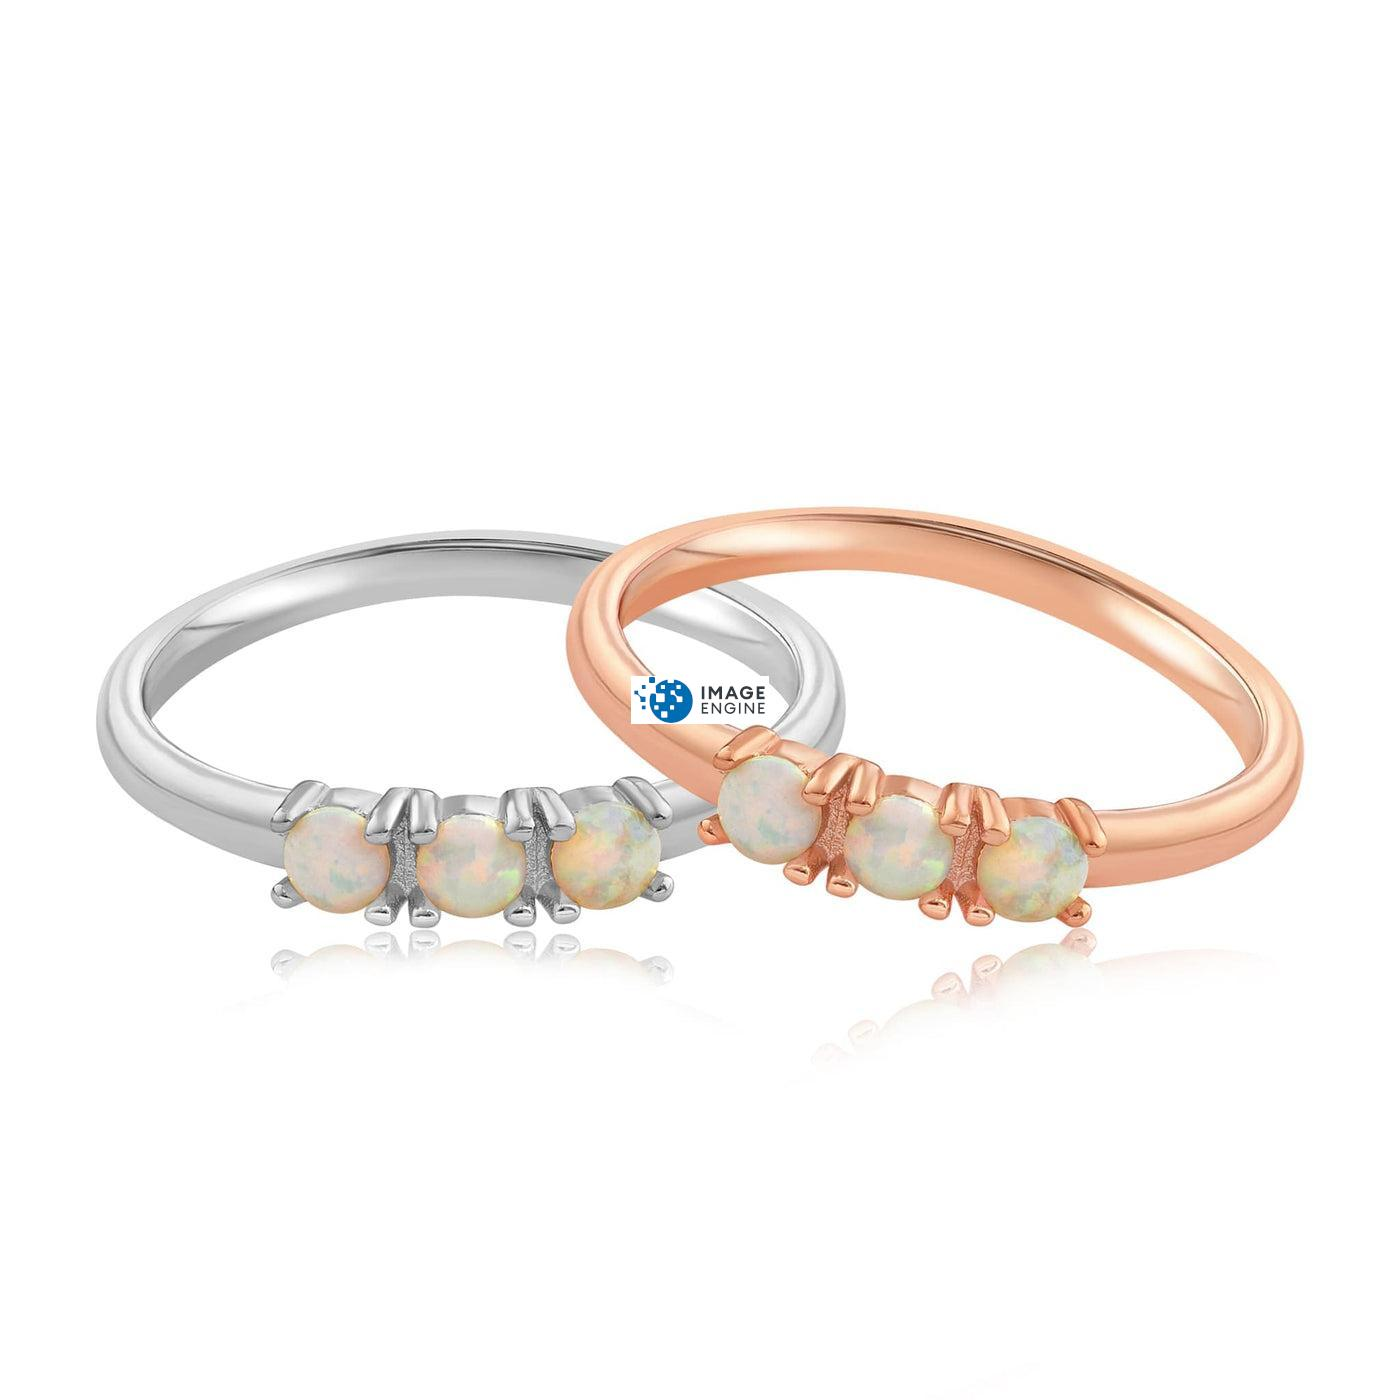 Simple Dots White Fire Opal Ring - Front View Side by Side - 18K Rose Gold Vermeil and 925 Sterling Silver